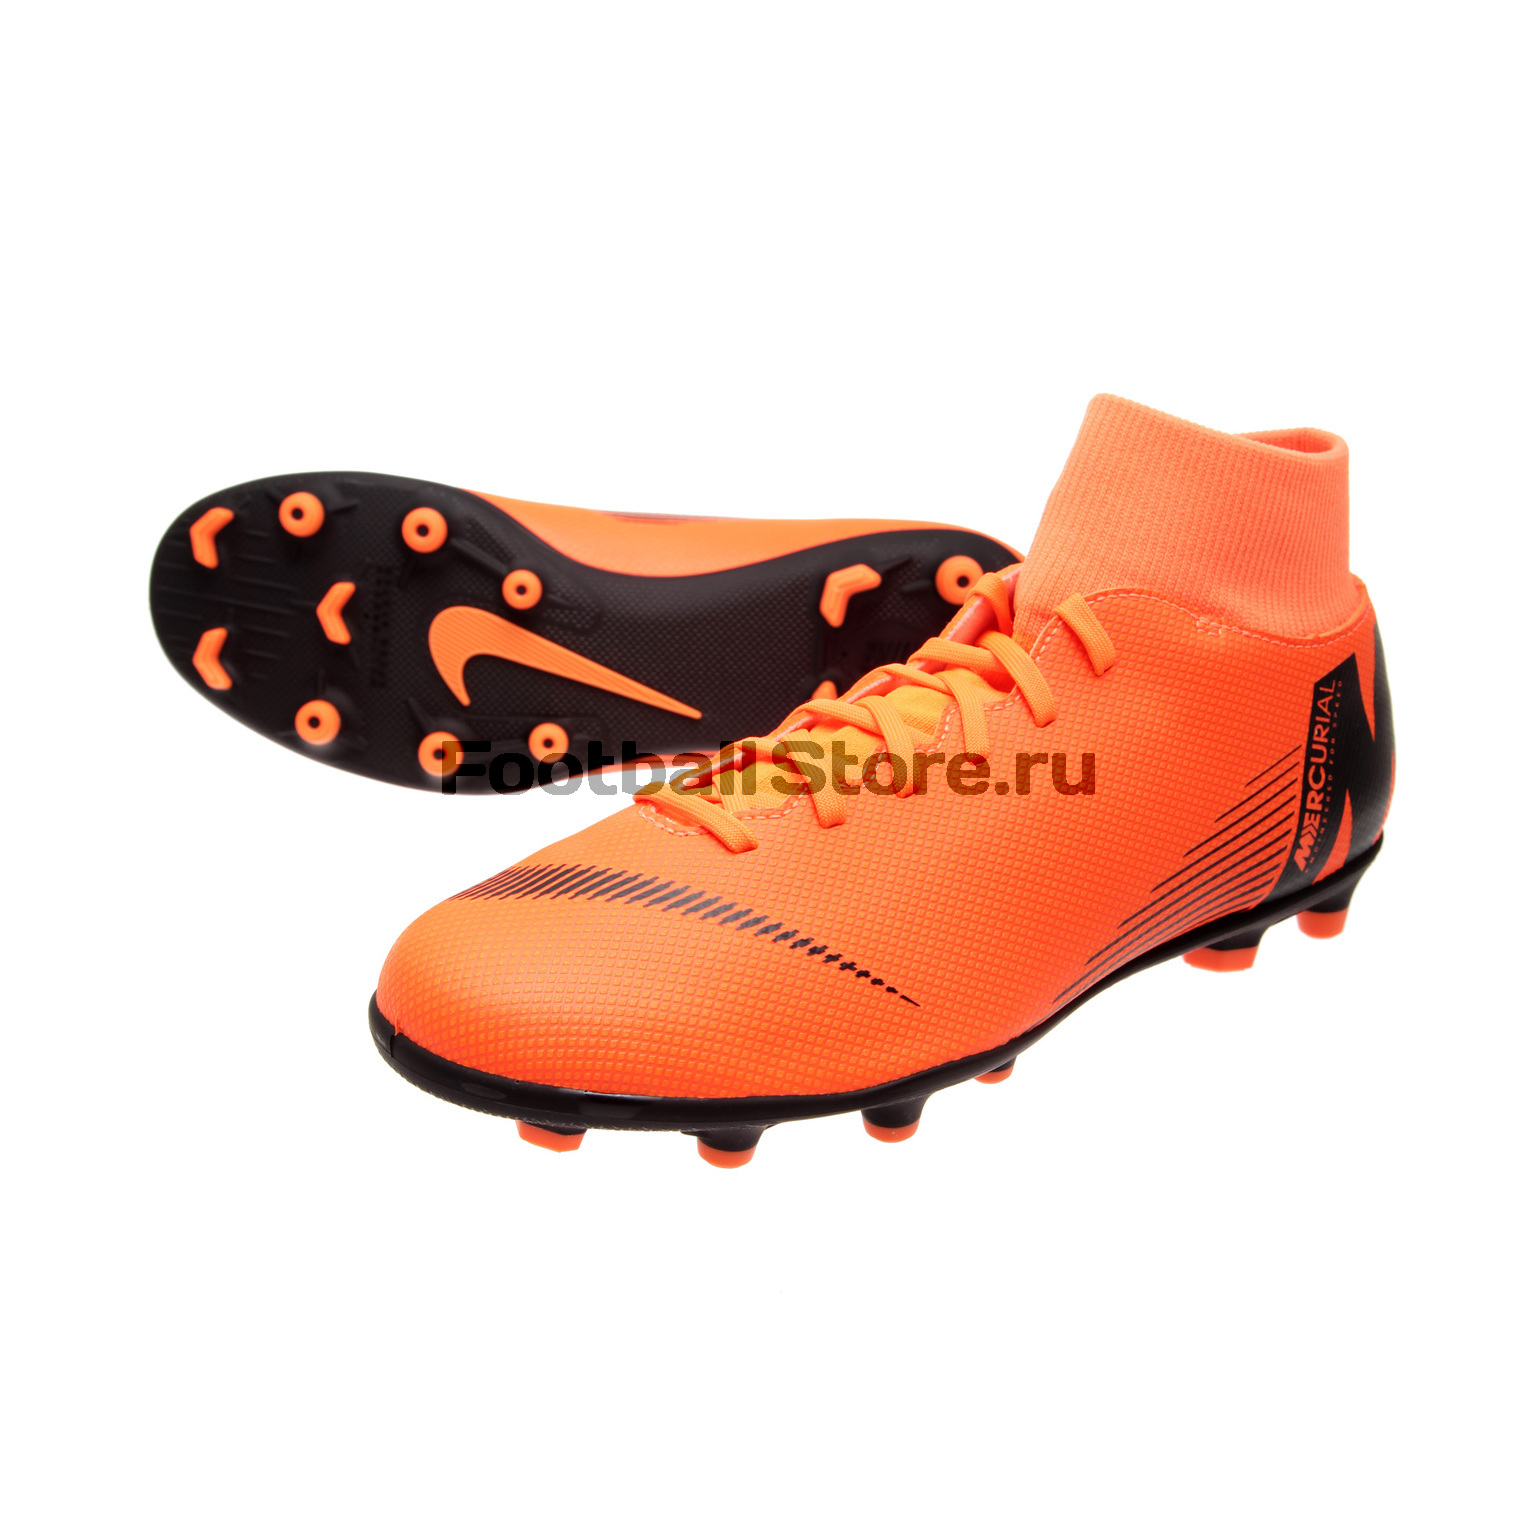 Бутсы Nike SuperFly 6 Club FG/MG AH7363-810 бутсы nike superfly 6 elite sg pro ac ah7366 060